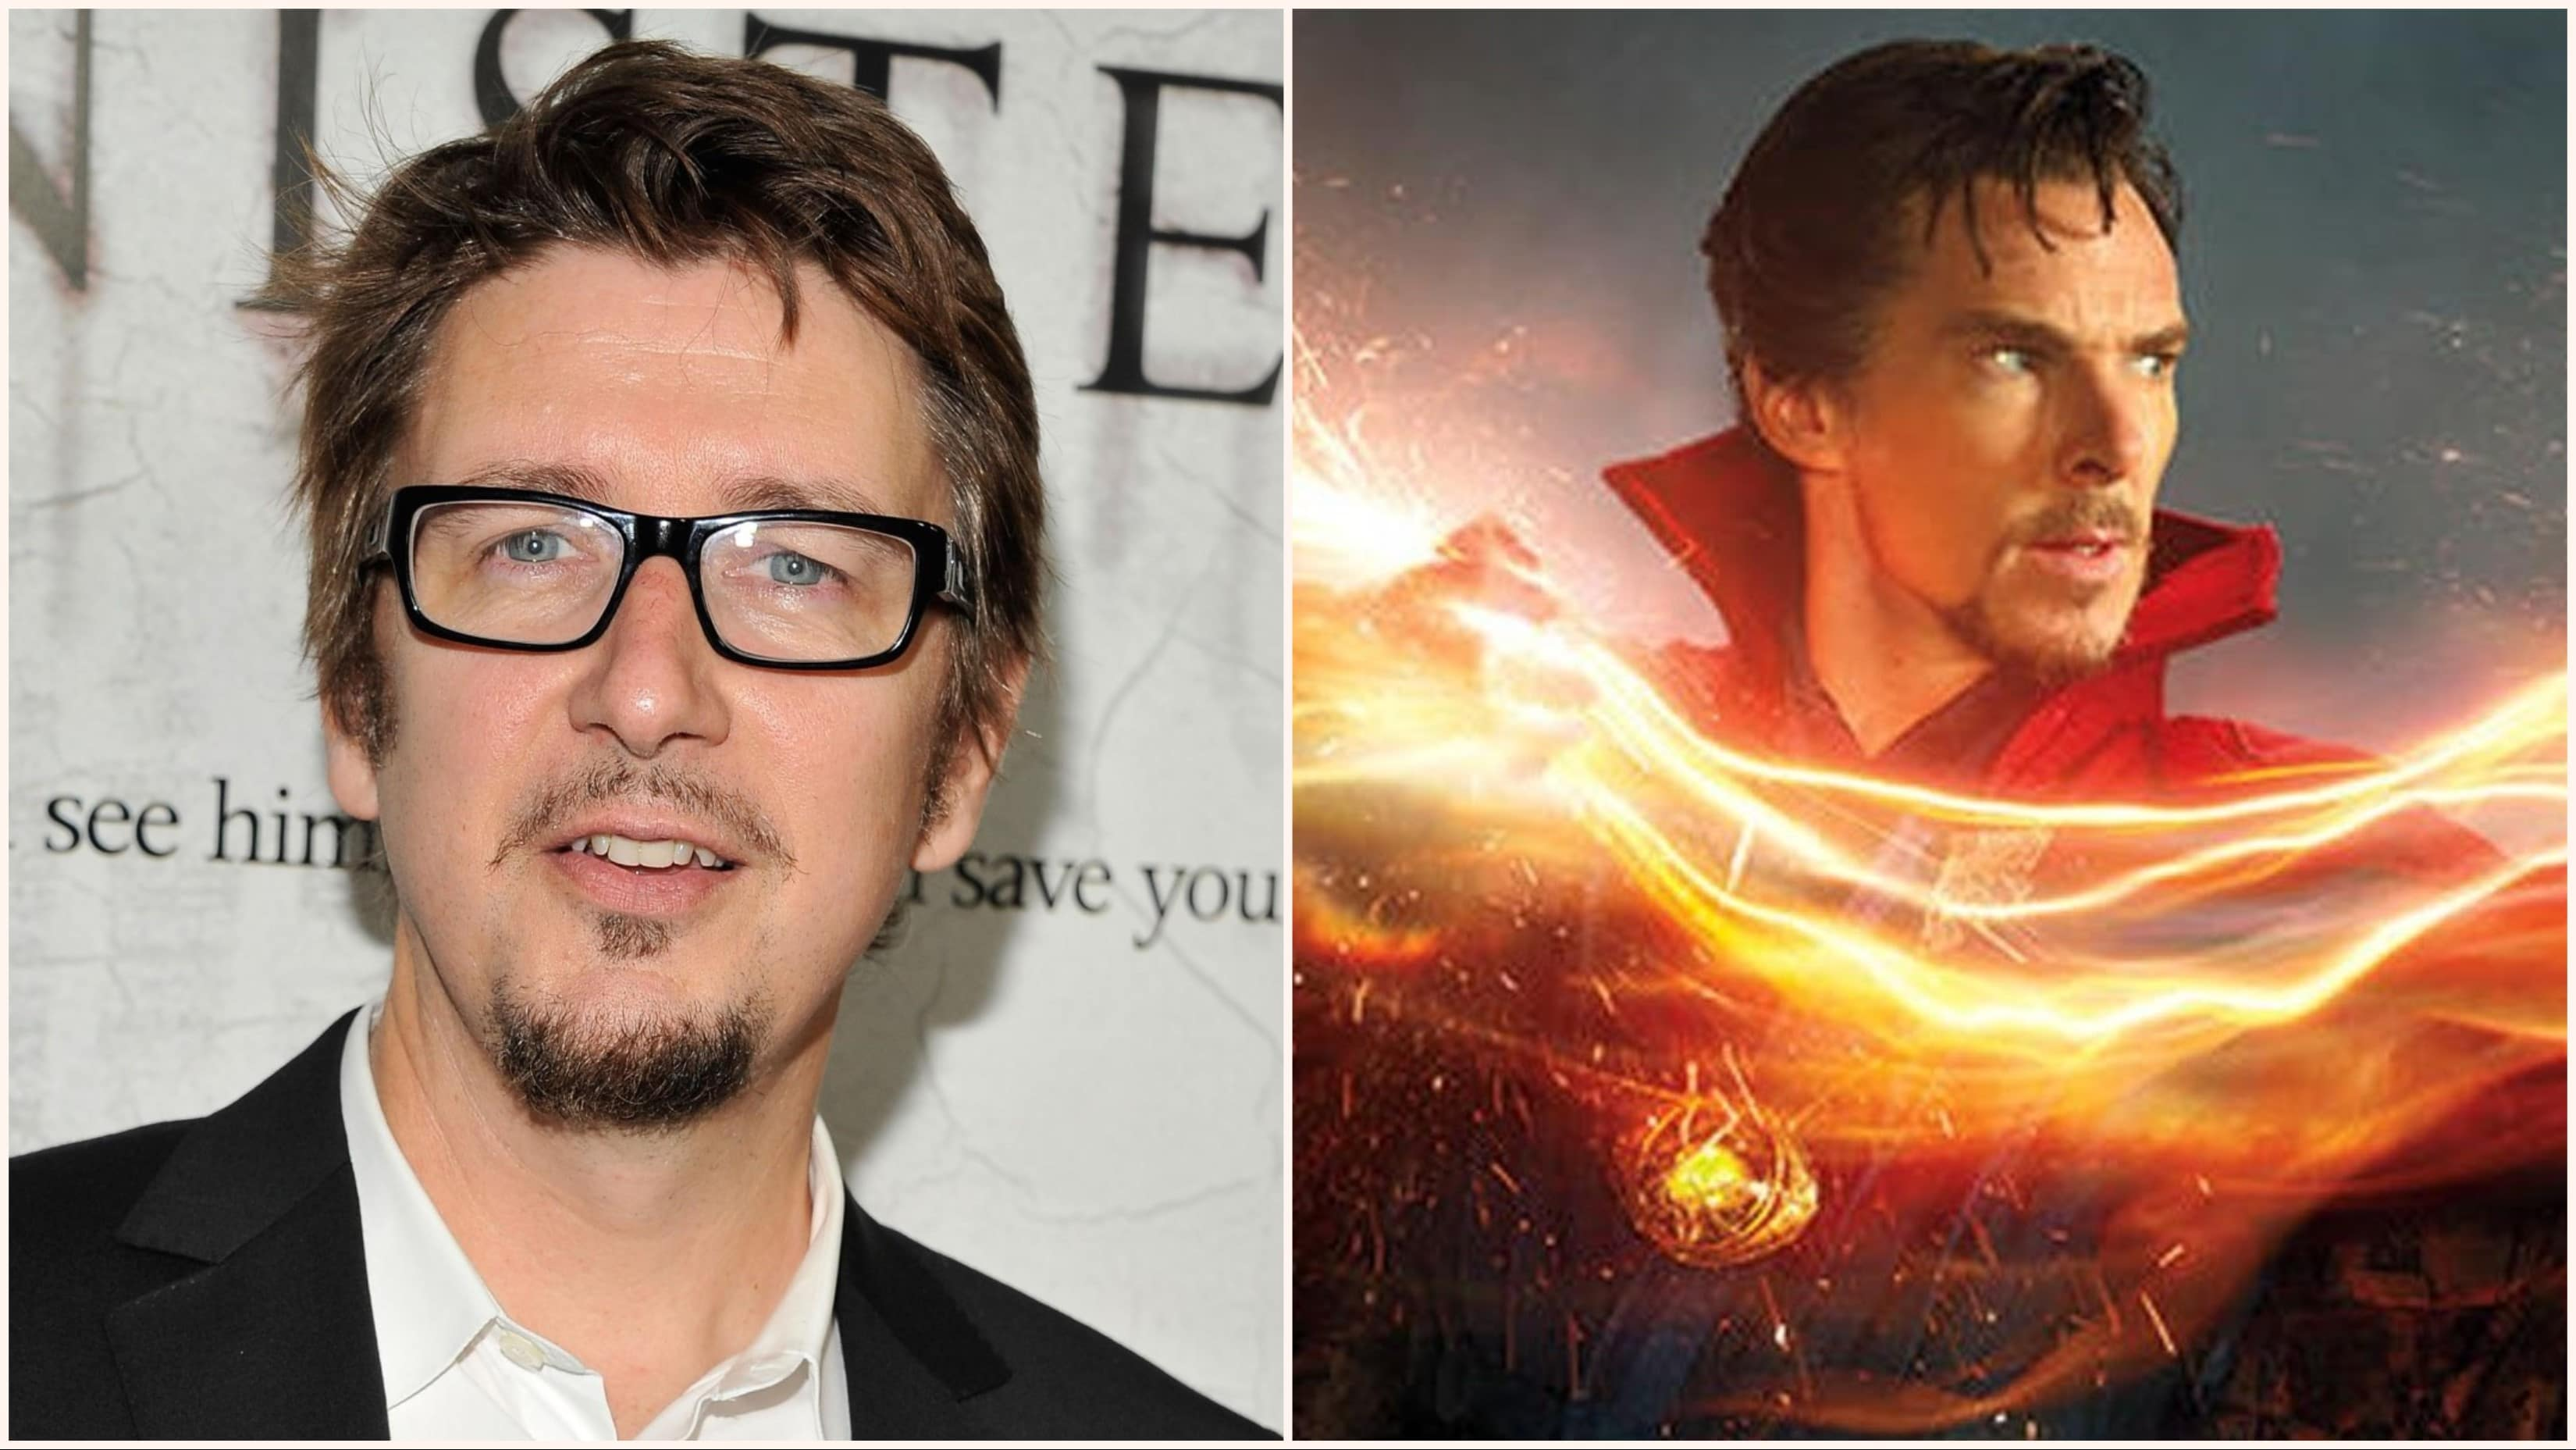 Scott Derrickson To Return For 'Doctor Strange' Sequel